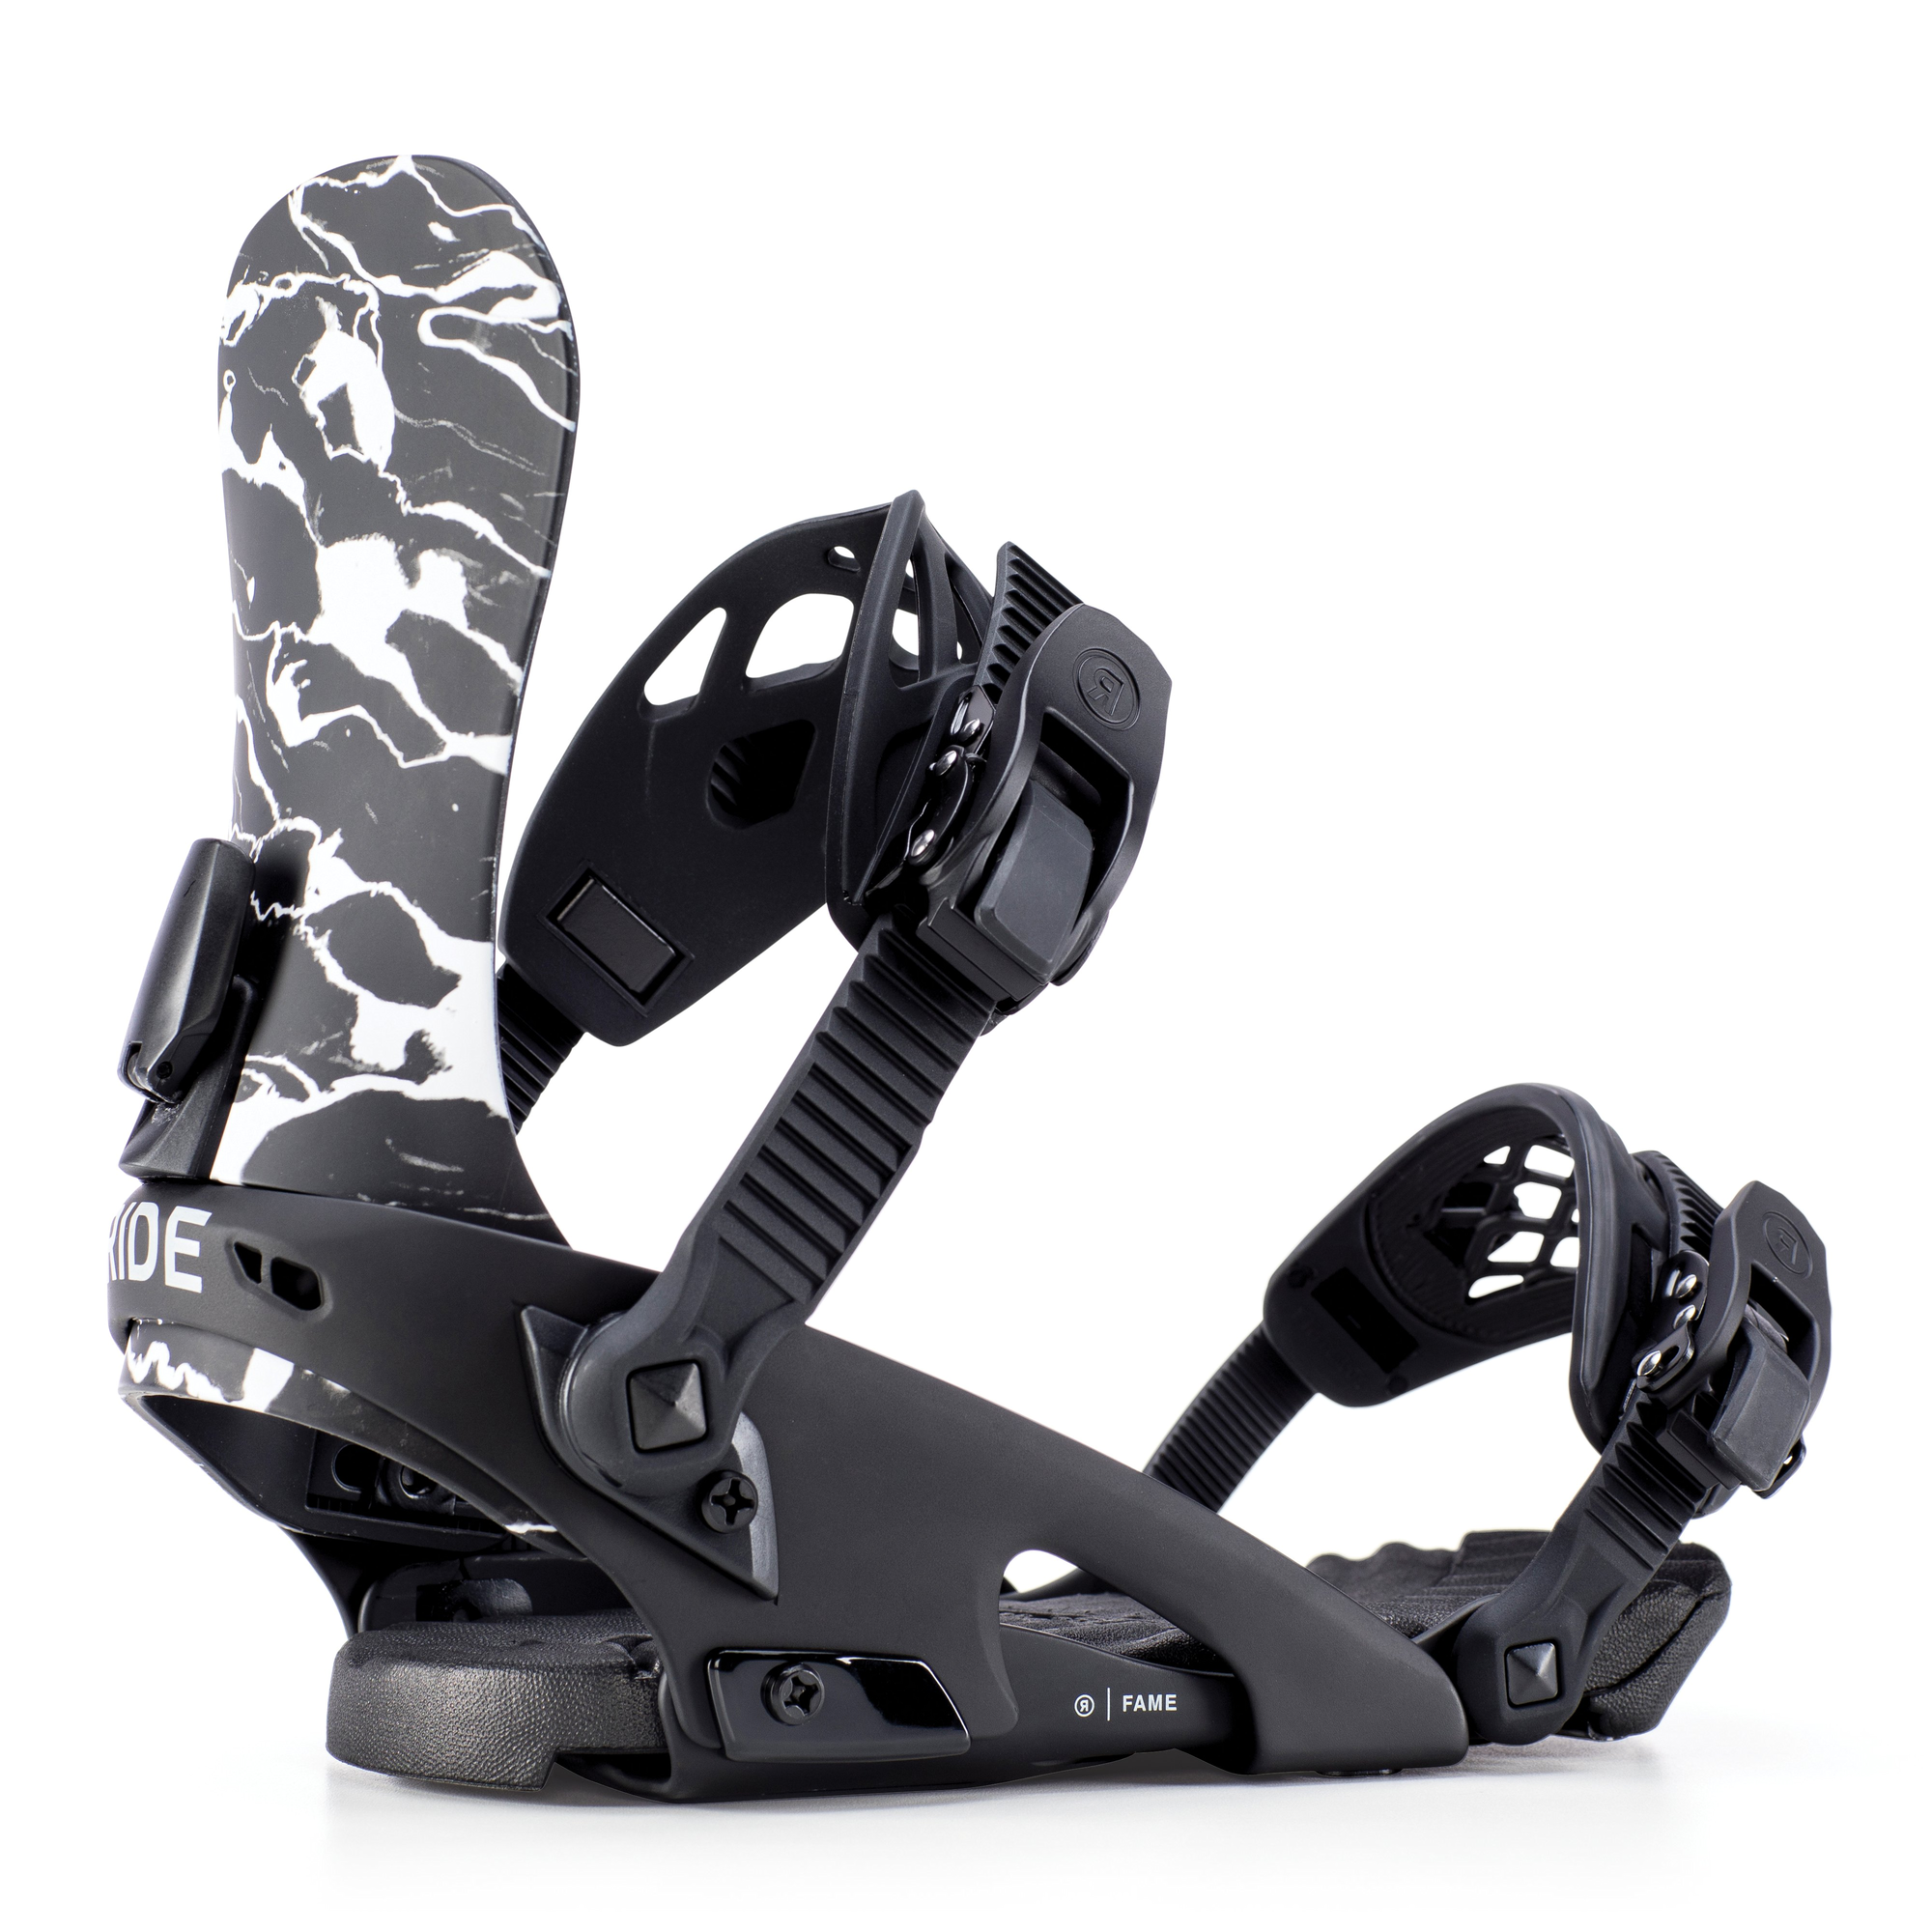 Black marble Fame Snowboard Bindings by Ride Snowboards (2019 collection)